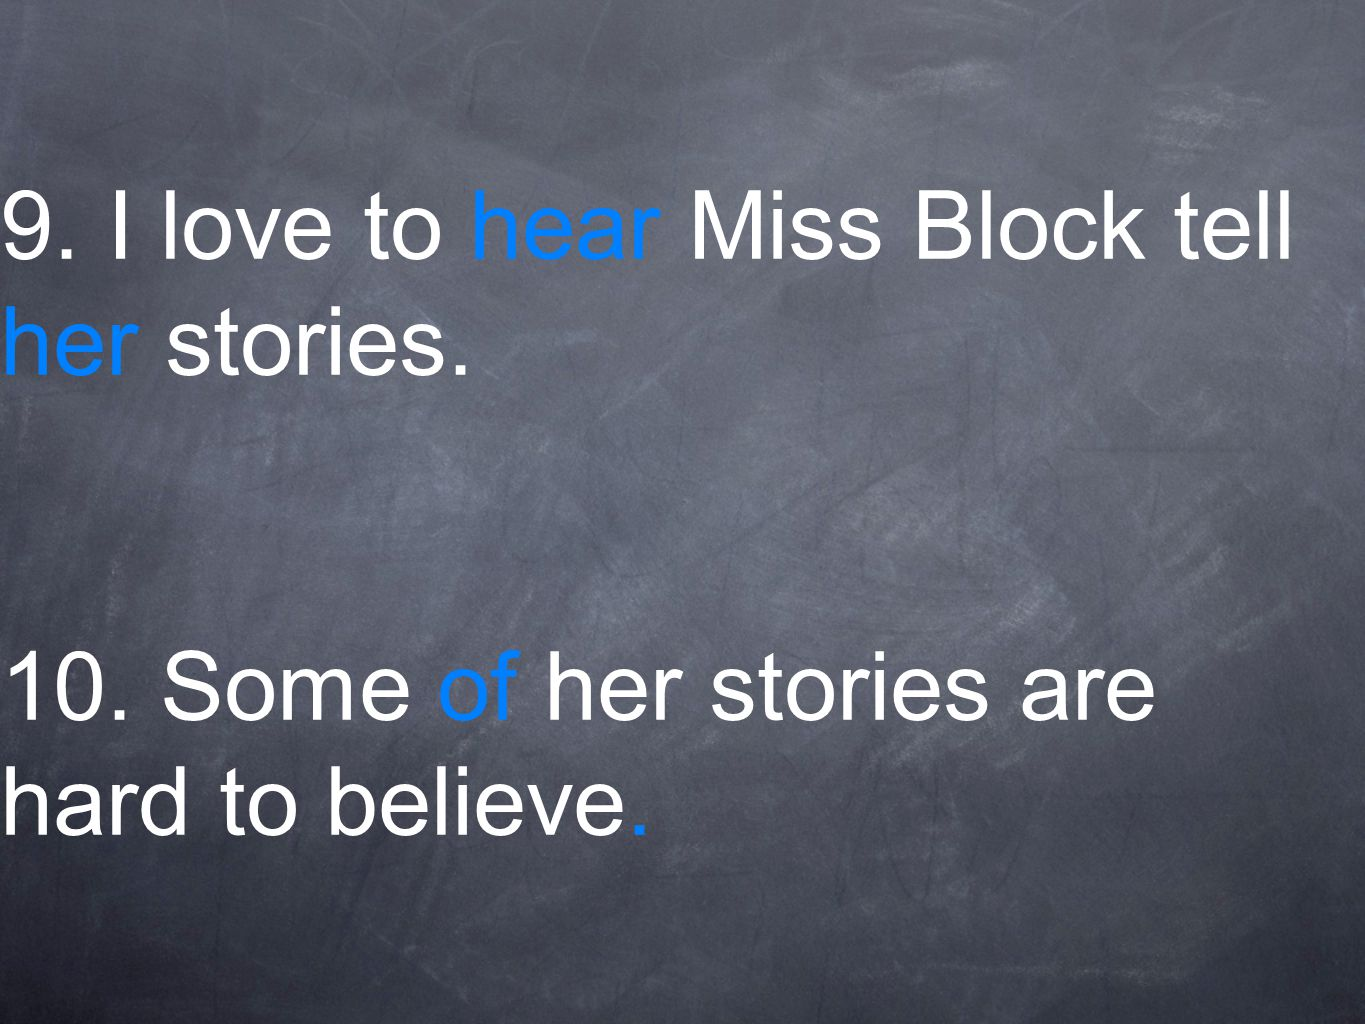 9. I love to hear Miss Block tell her stories. 10. Some of her stories are hard to believe.